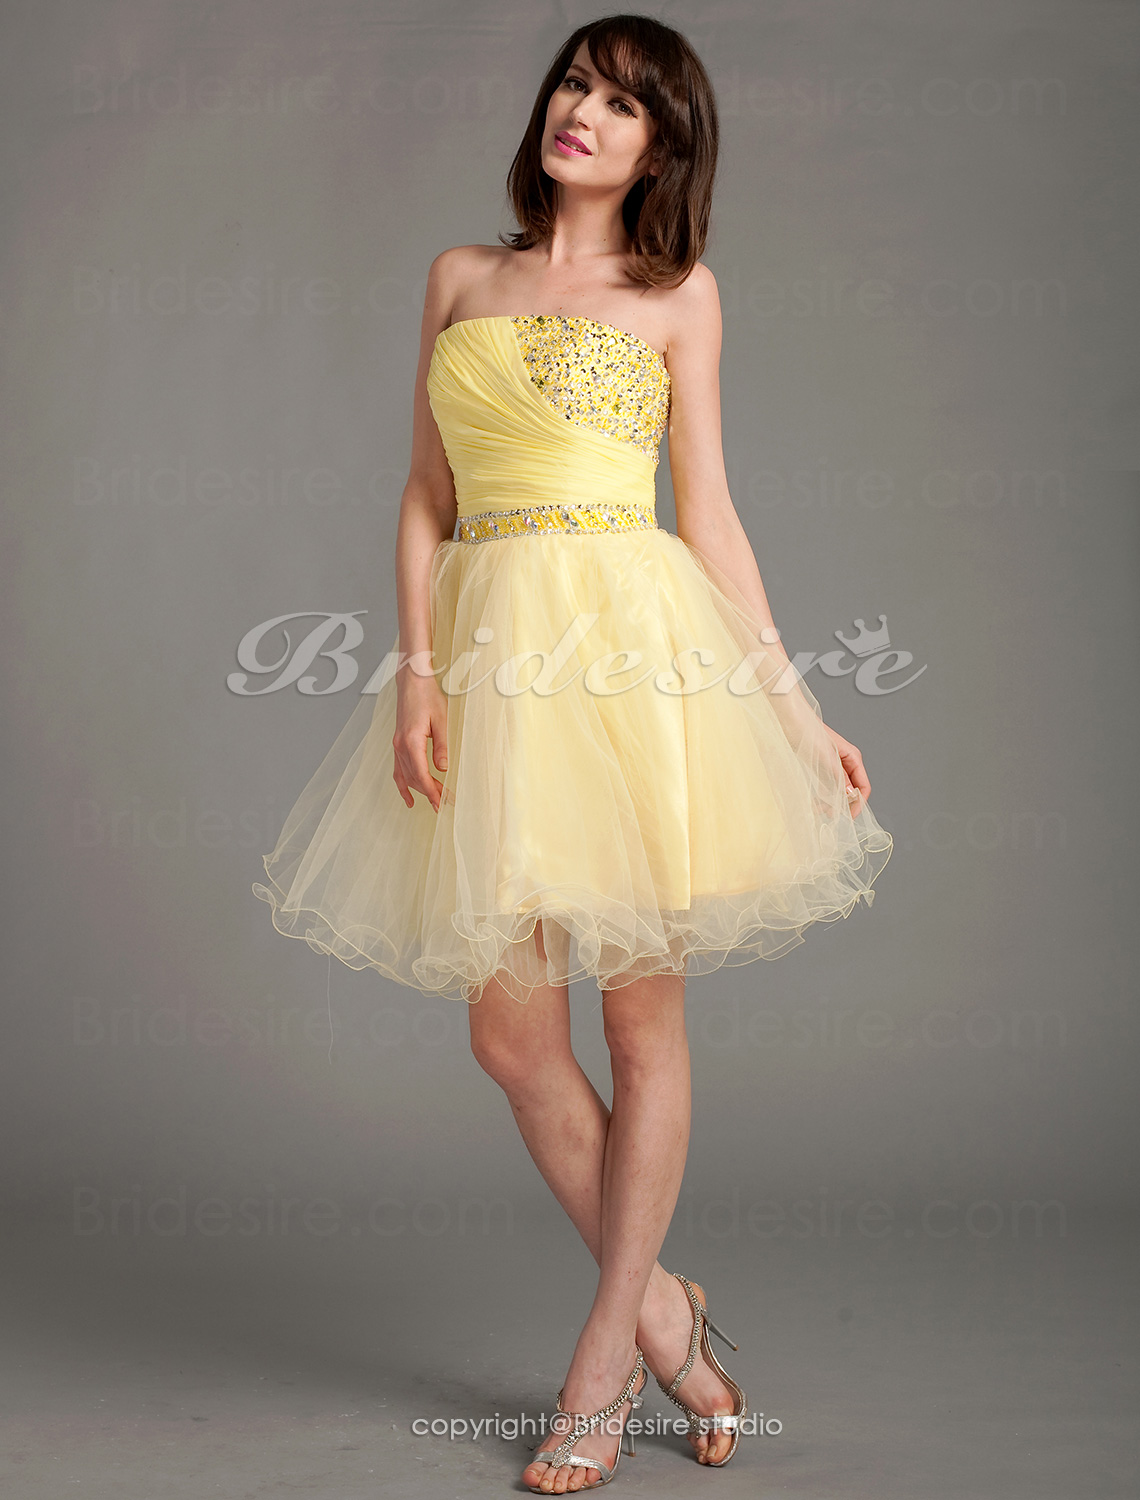 A-line Chiffon And Tulle Short/Mini Strapless Cocktail Dress With Beading And Crystal Detailing